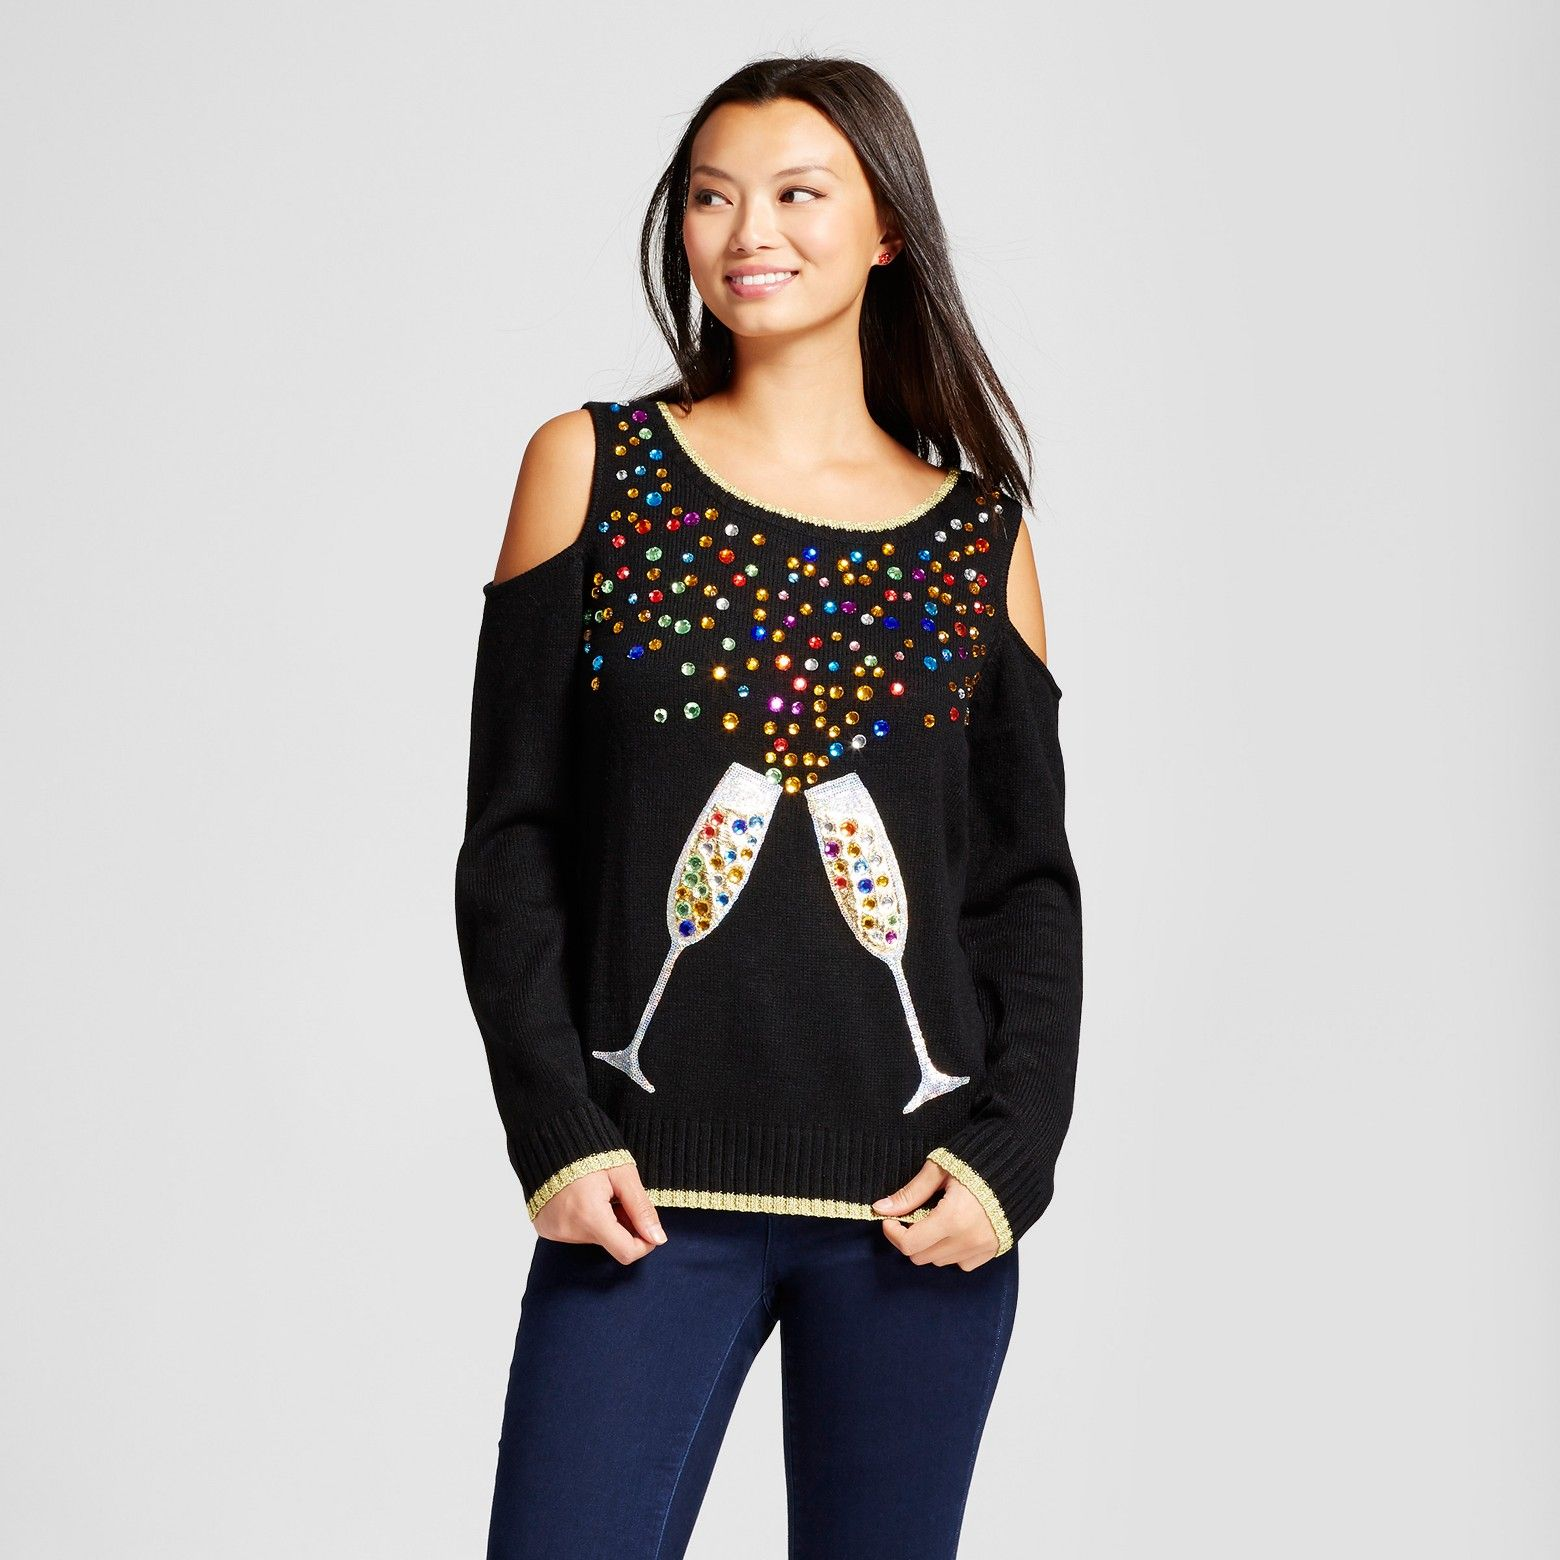 96733629f9 Womens Christmas Tops Target – Rockwall Auction